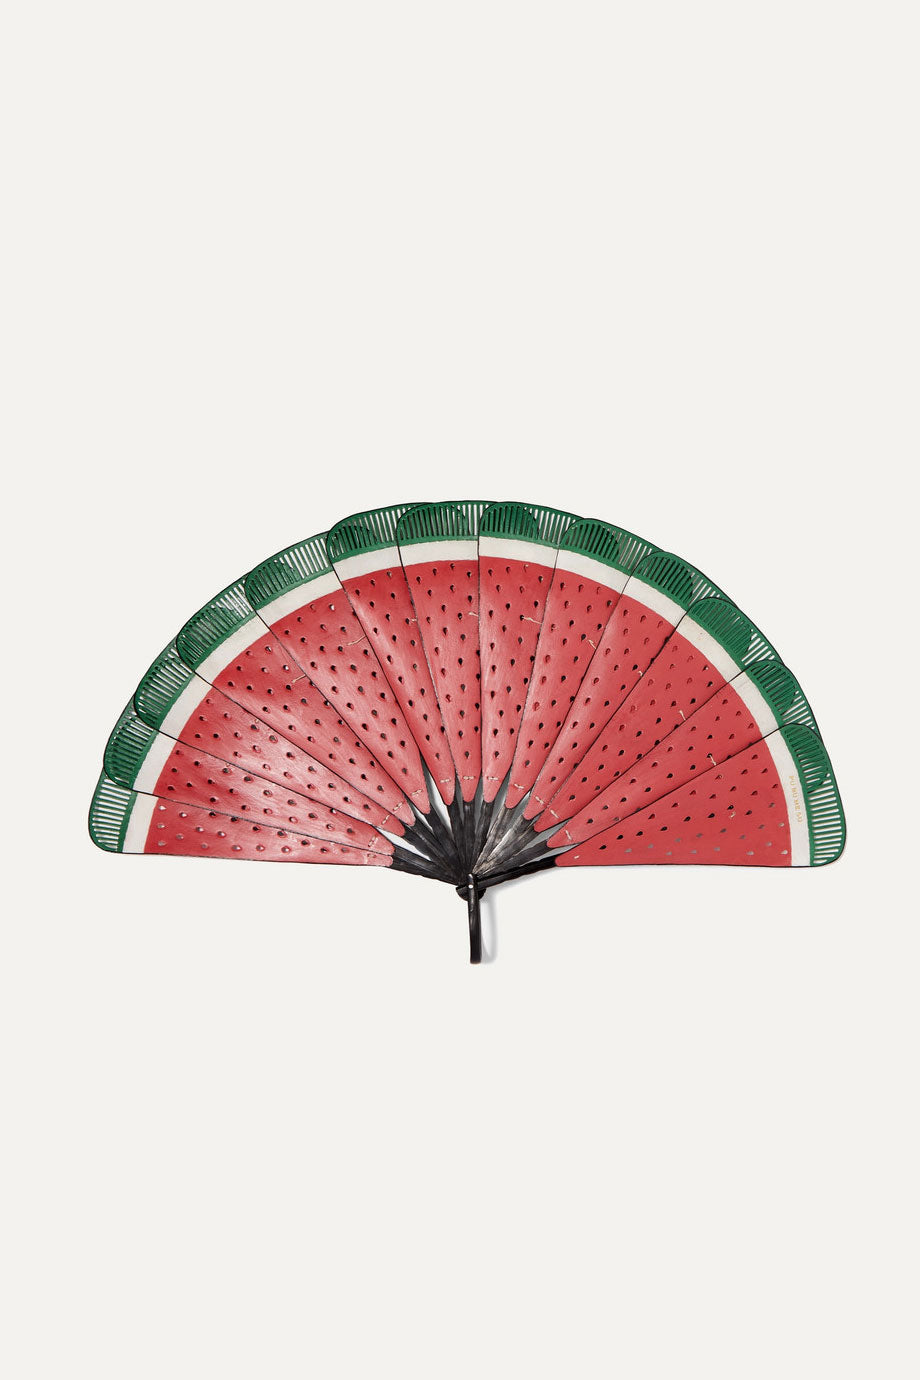 SEMANGKA (WATERMELON) FAN